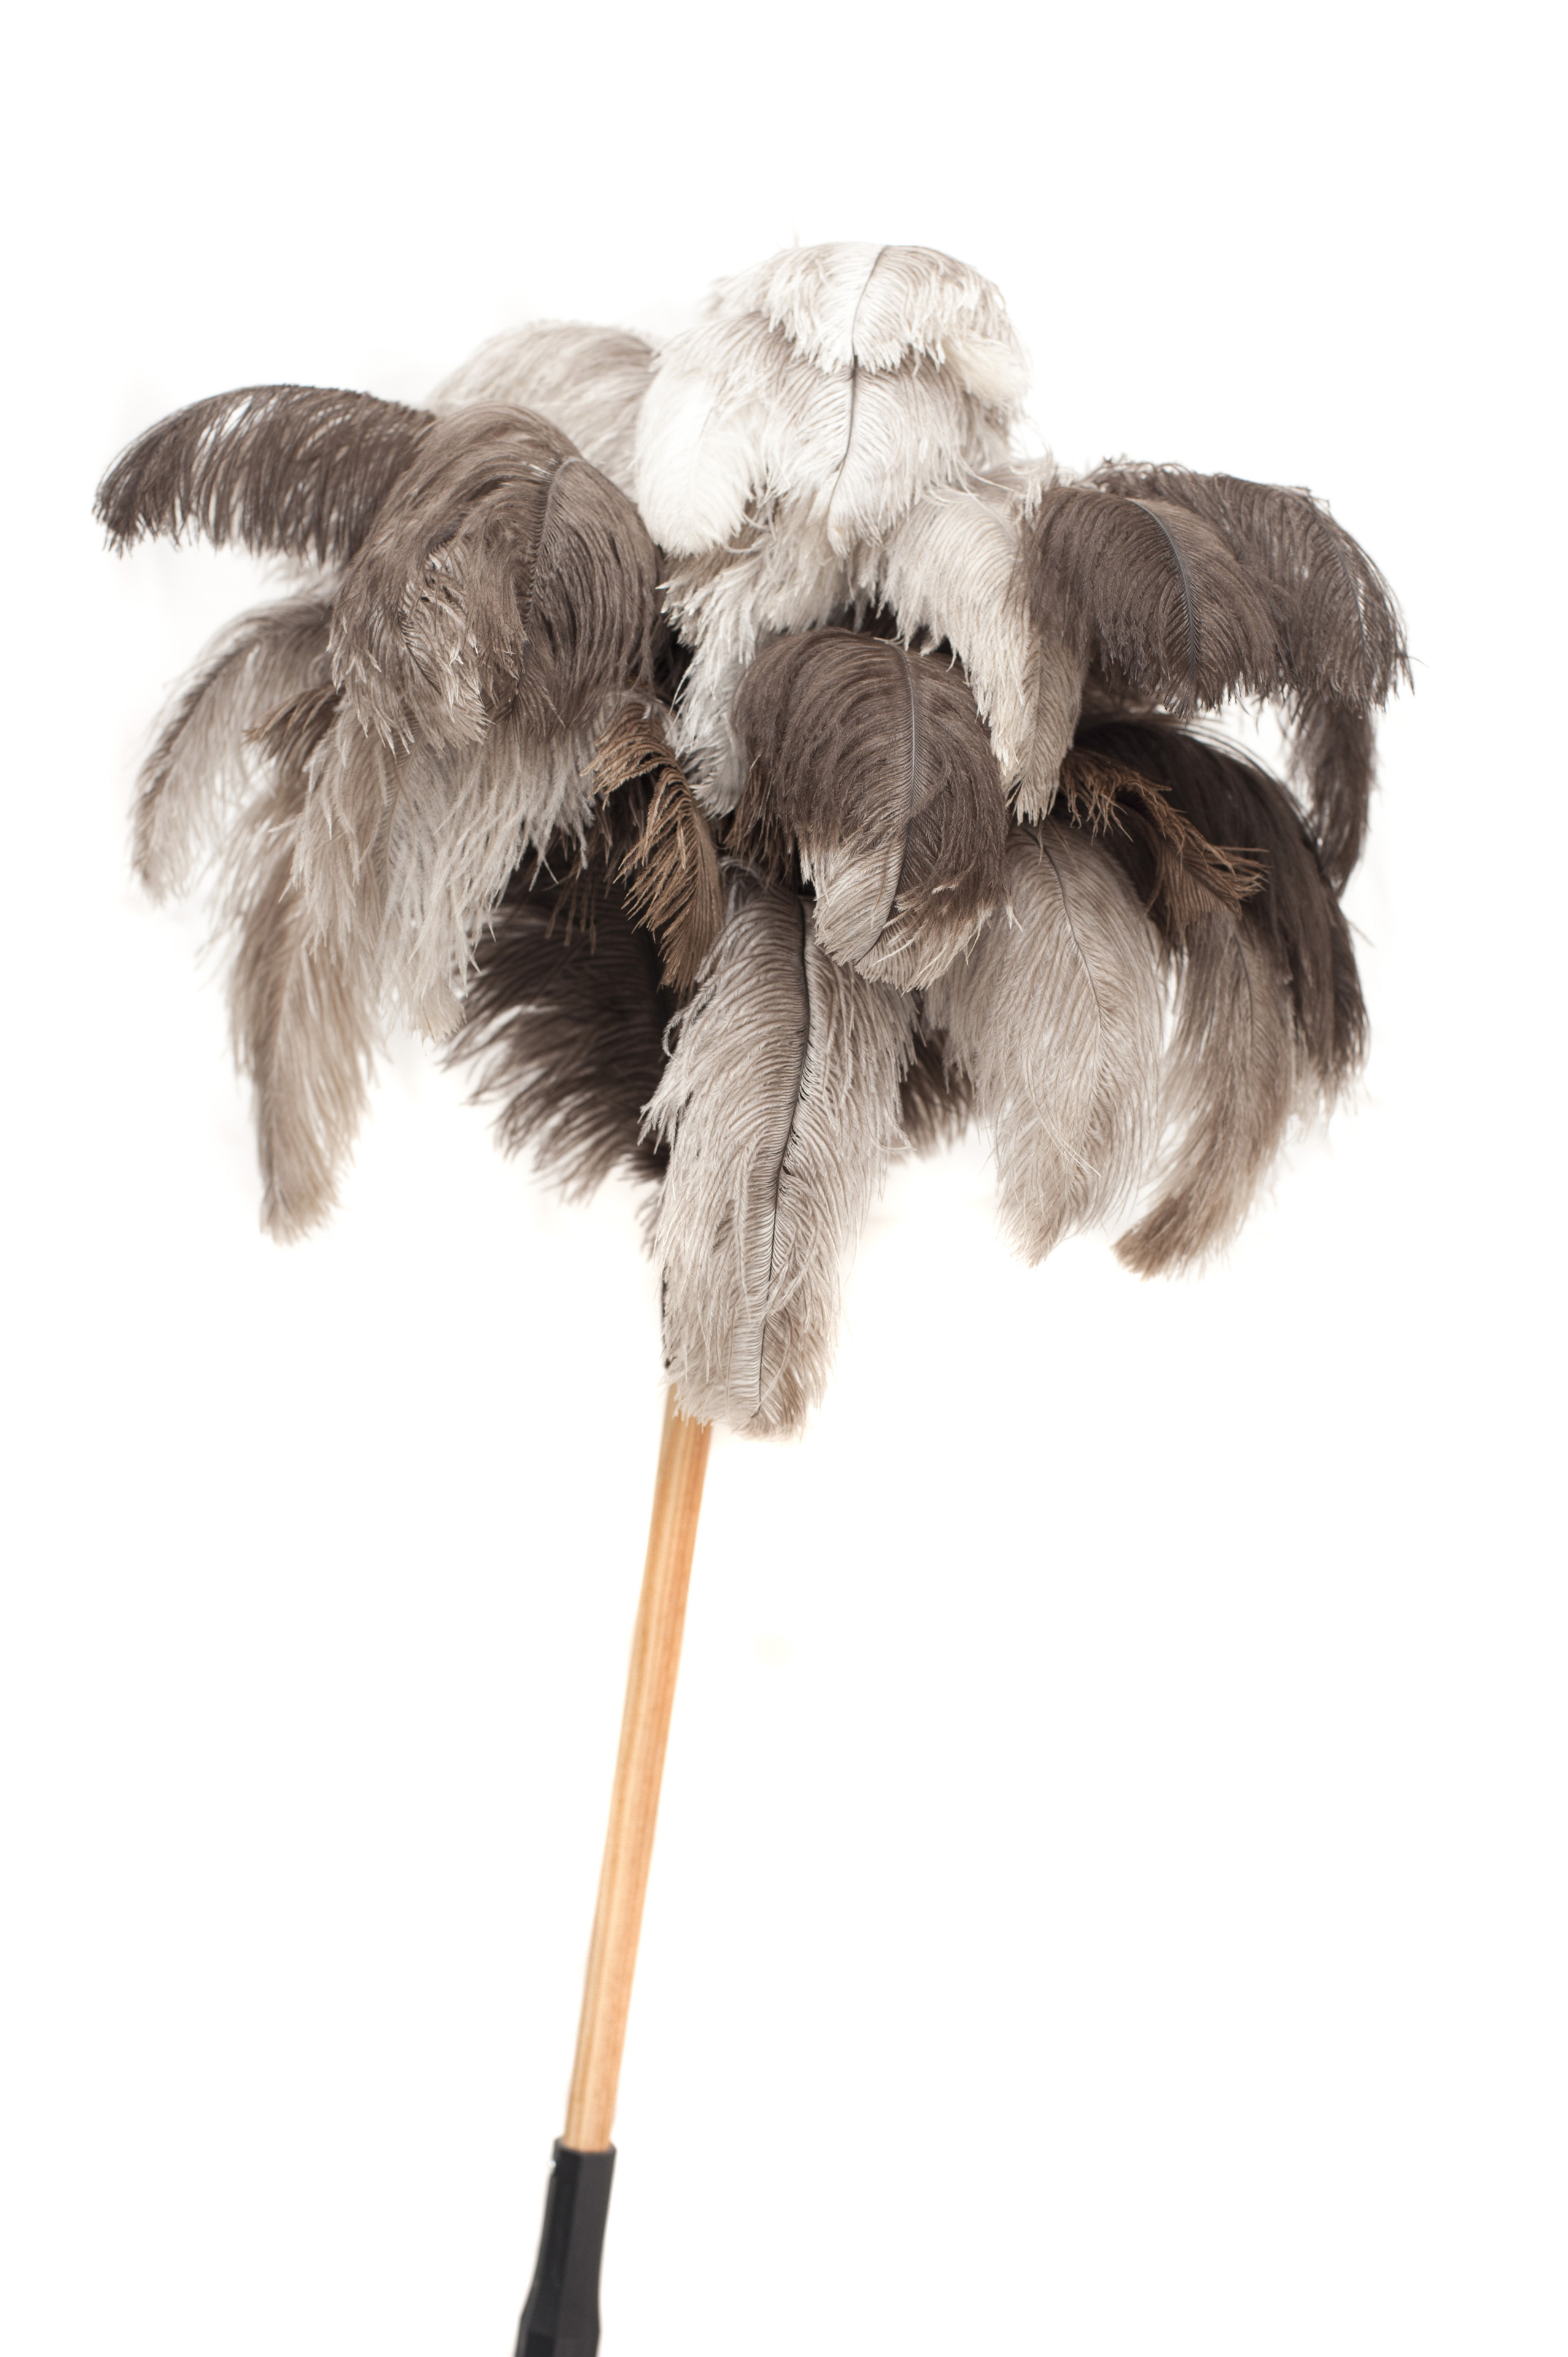 Large feather duster with natural ostrich plumes and a long wooden handle for cleaning the ceiling in a household chores and hygiene concept